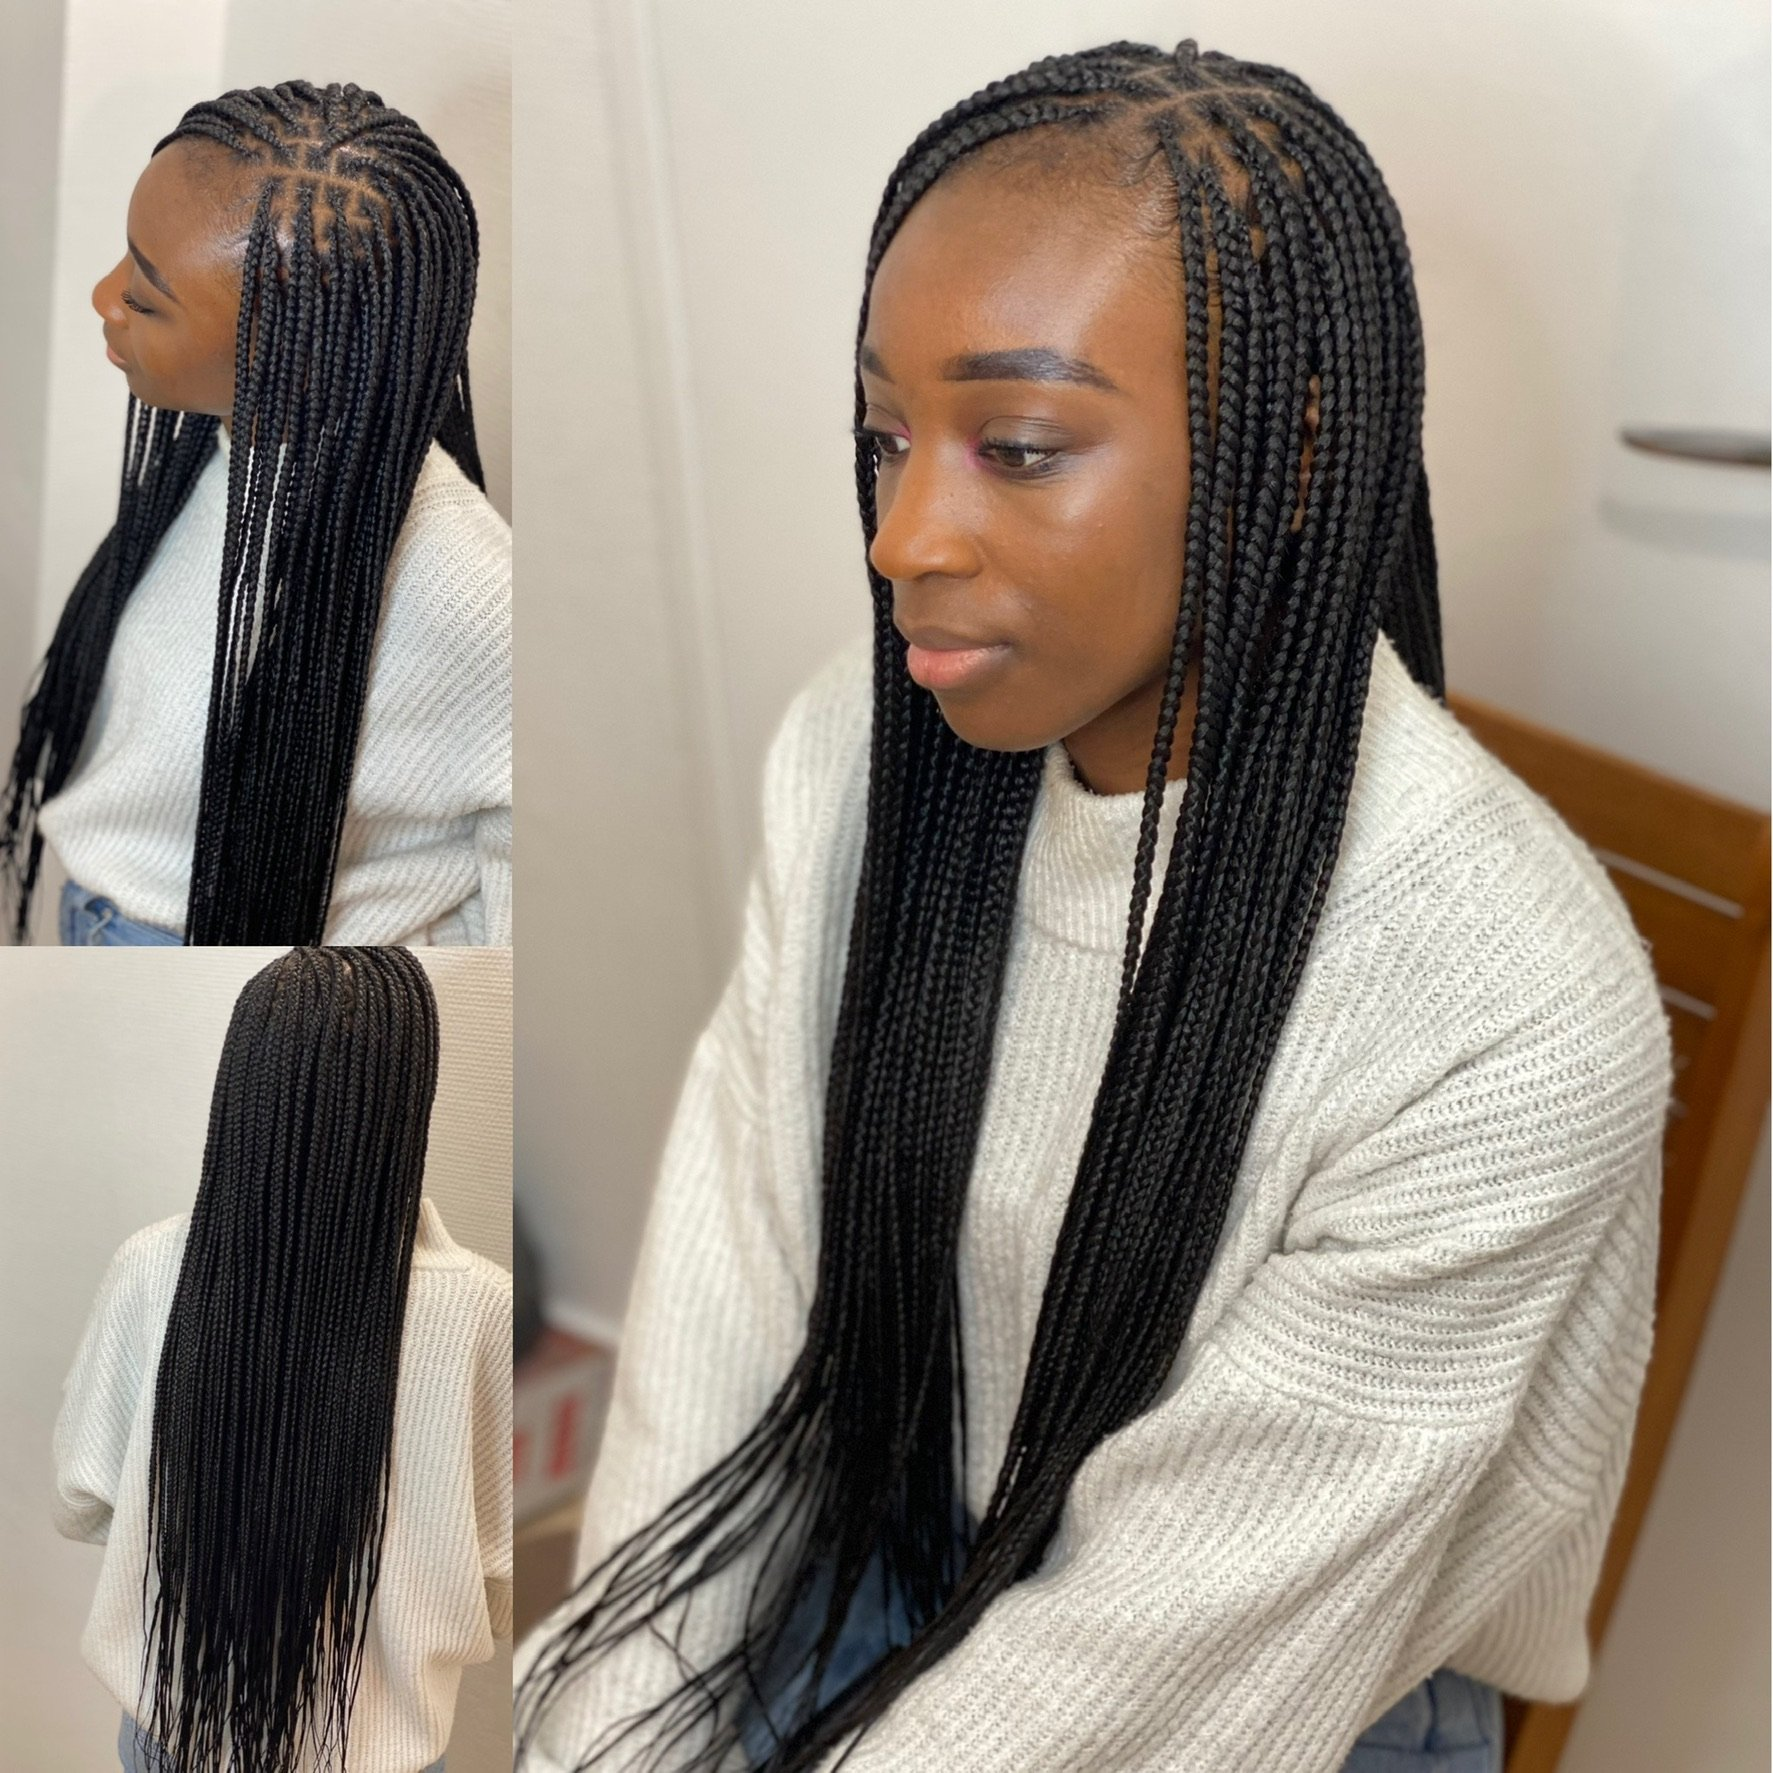 salon de coiffure afro tresse tresses box braids crochet braids vanilles tissages paris 75 77 78 91 92 93 94 95 FBZZWAGO